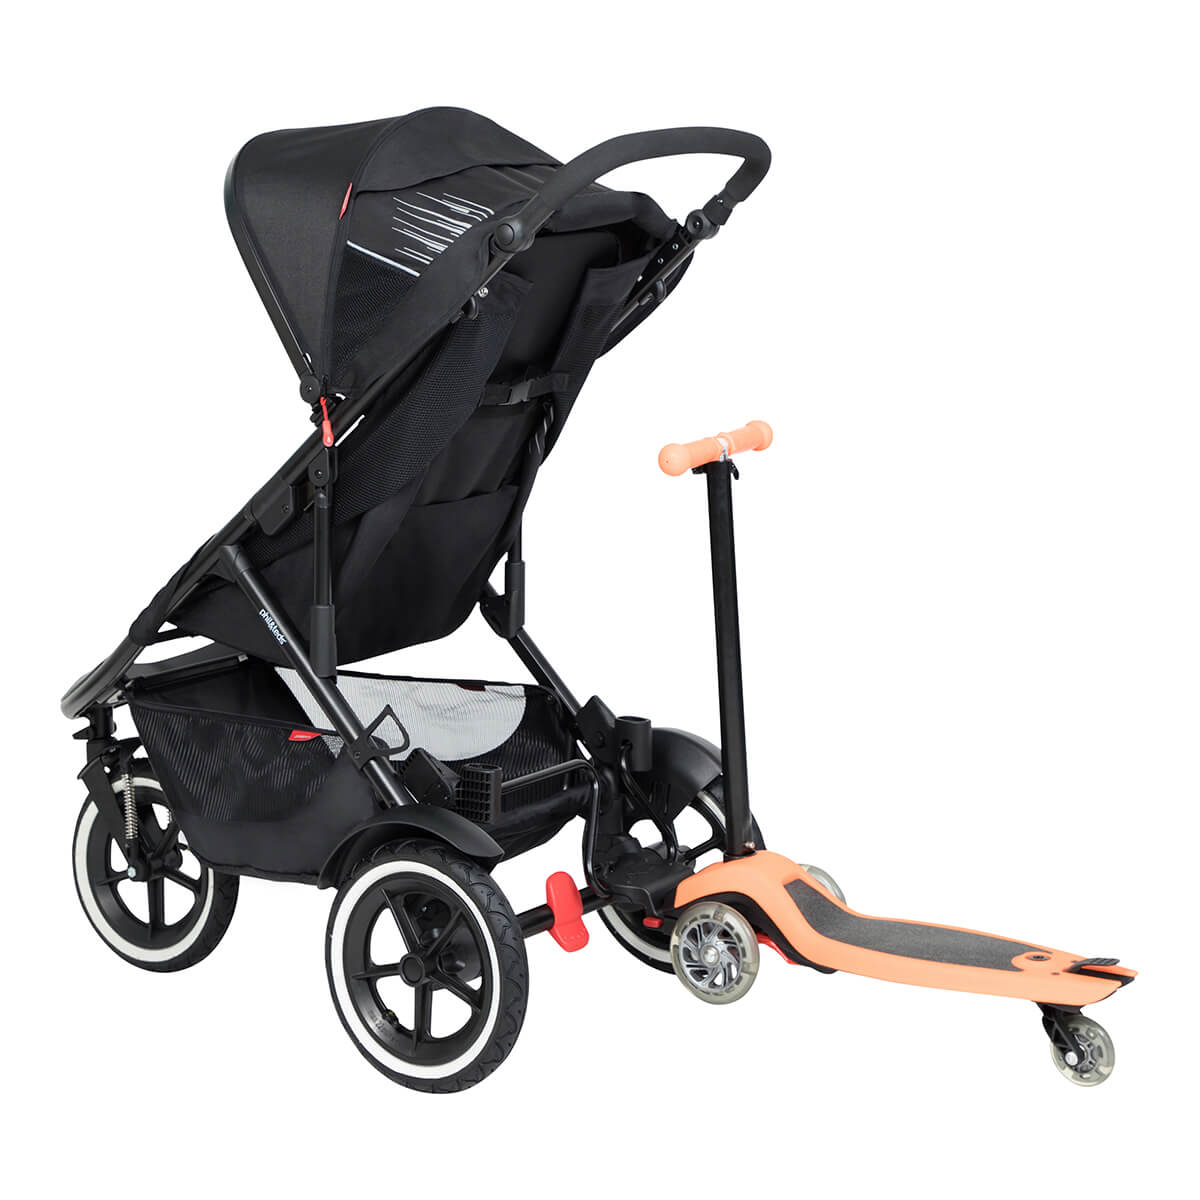 https://cdn.accentuate.io/4509866590305/19793940119722/philteds-sport-buggy-with-freerider-stroller-board-in-rear-v1626485324720.jpg?1200x1200